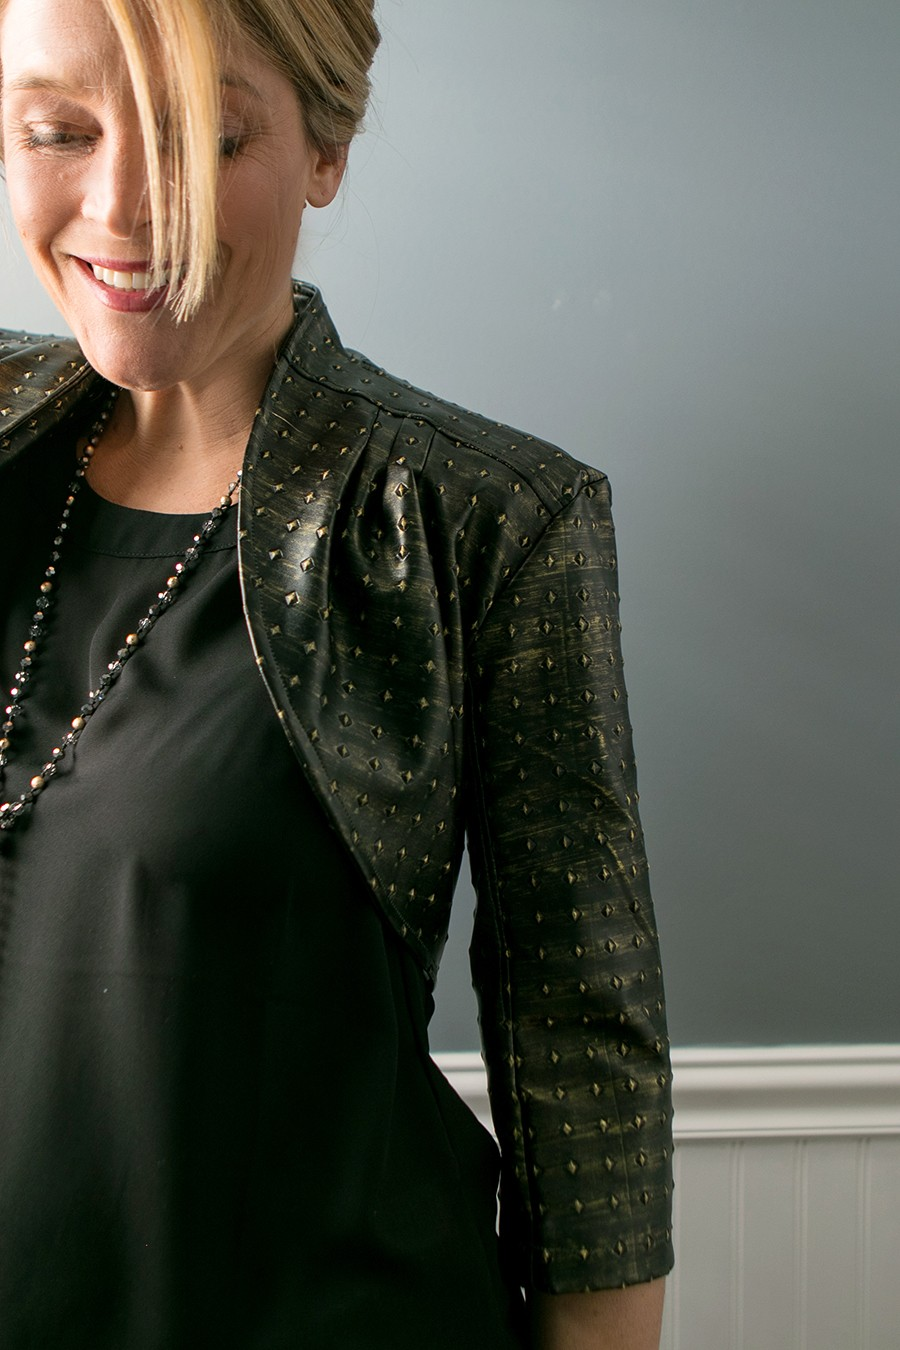 add a leather shrug to your evening attire! Punk meets elegant.